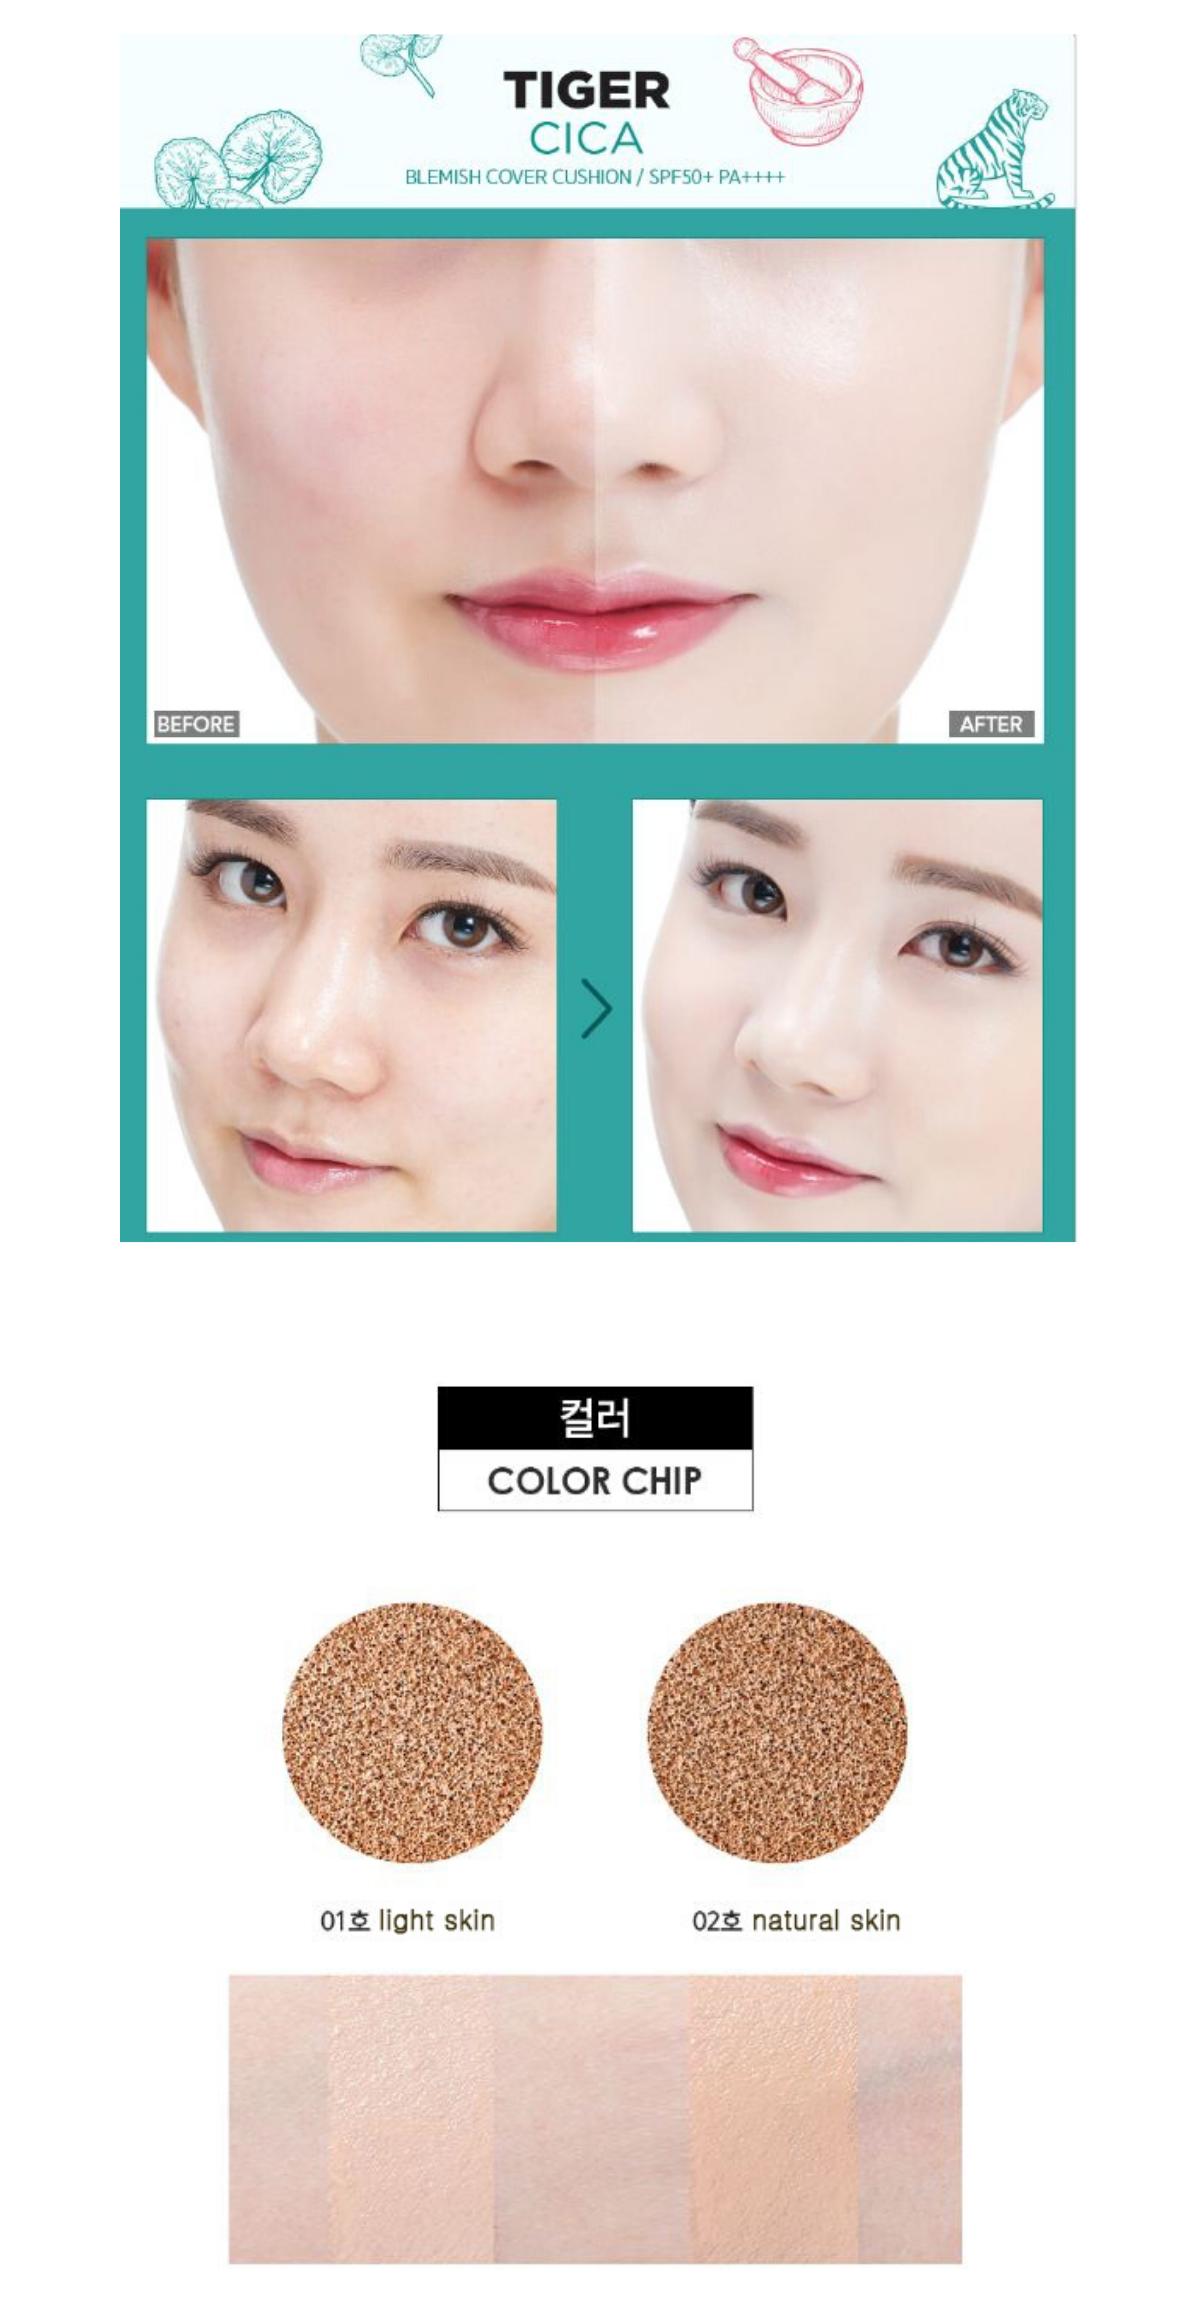 It'S SKIN - Tiger Cica Blemish Cover Cushion SPF50+ PA+++